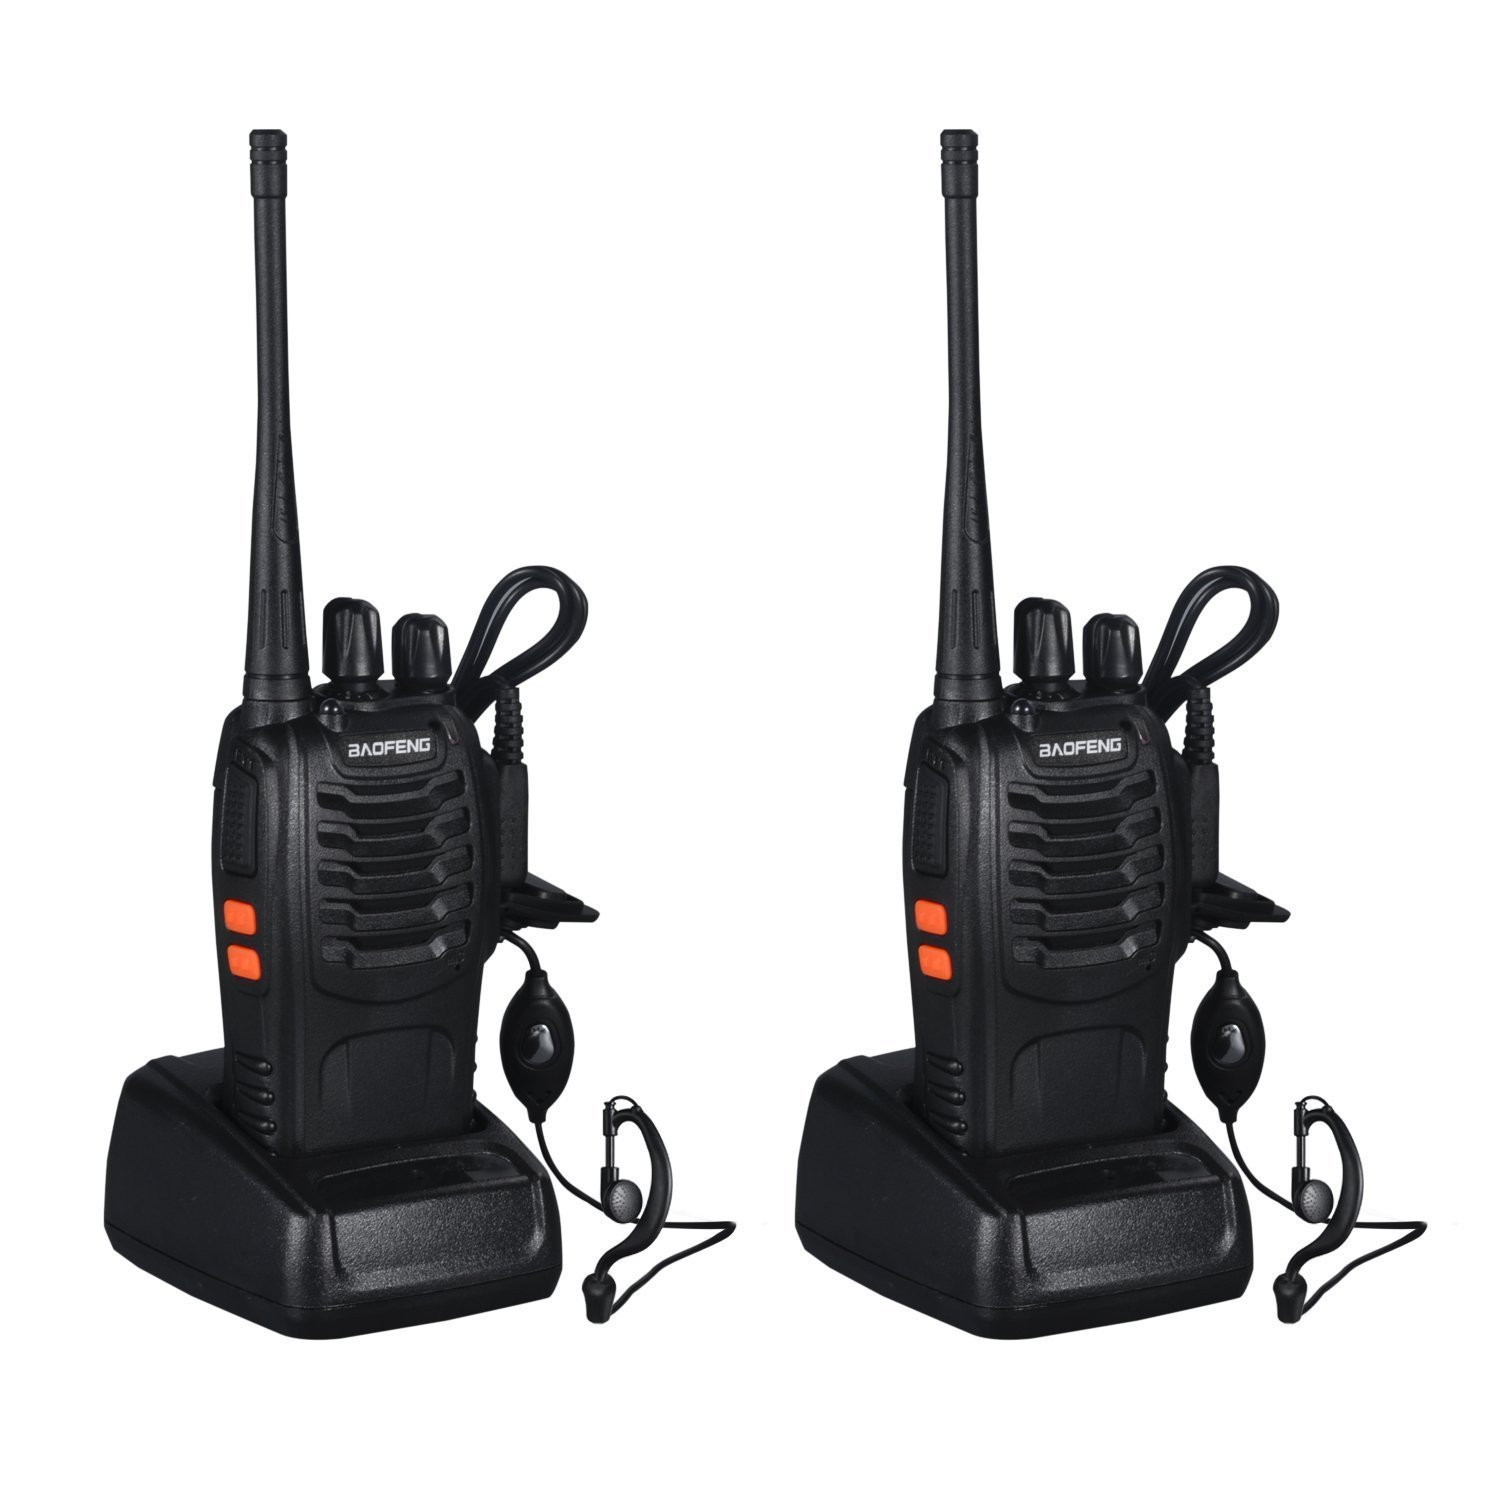 START Walkie Talkies Long Range Two-Way Radios with Earpiece 2 Pack 16 Channel UHF 400-470Mhz Walkie Talkies Li-ion Battery and Charger Included